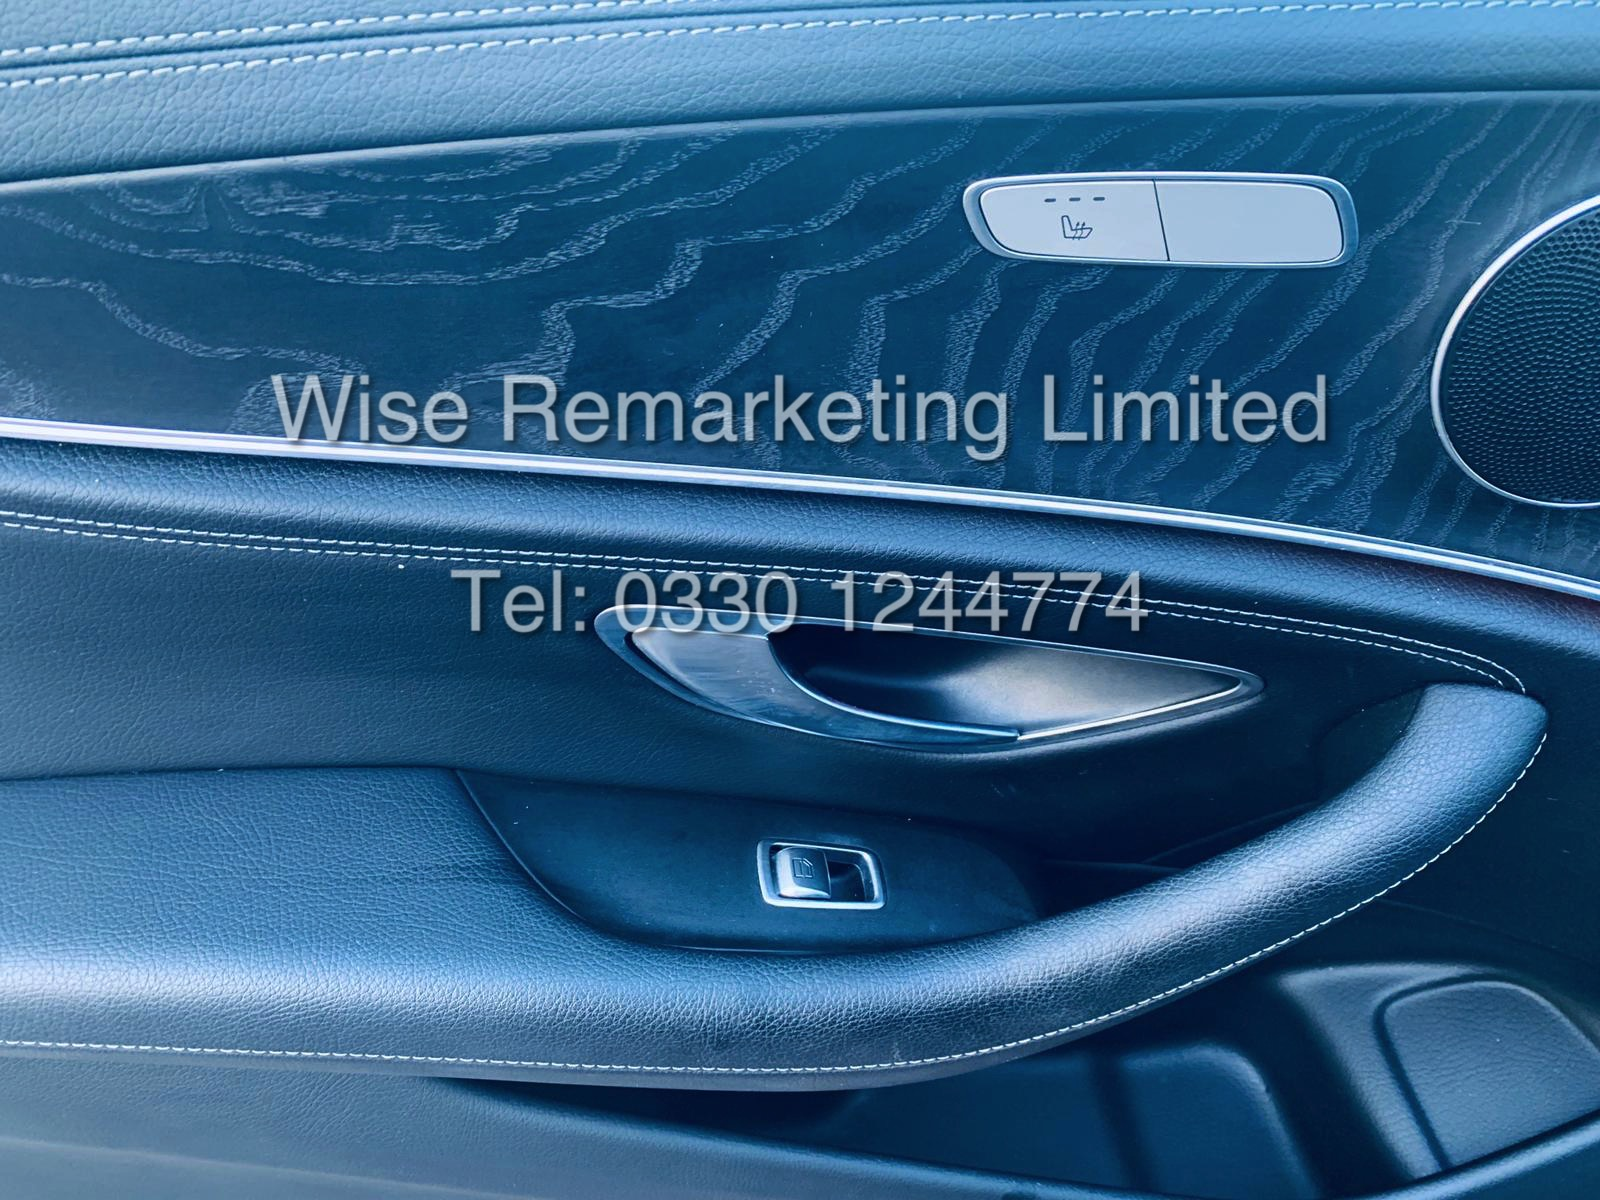 MERCEDES E CLASS ESTATE E220D AMG LINE 2017 / 9G -TRONIC / *LOW MILES* / 1 OWNER - Image 22 of 42